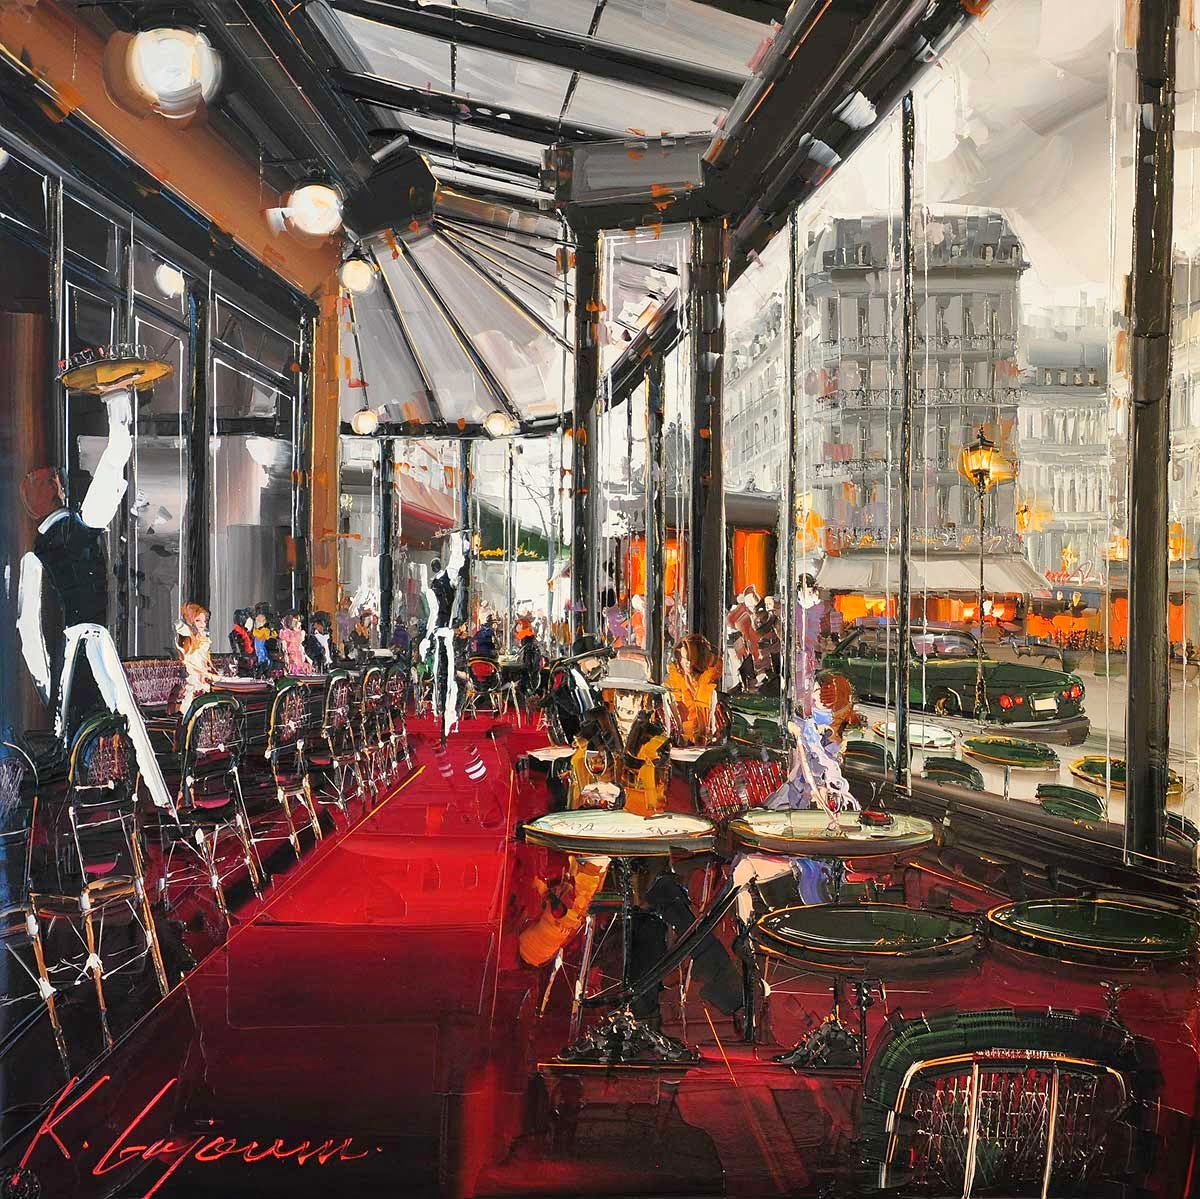 11-Café-de-Flore-Kal-Gajoum-Paintings-of-Dream-Like Cities-of-the-World-www-designstack-co